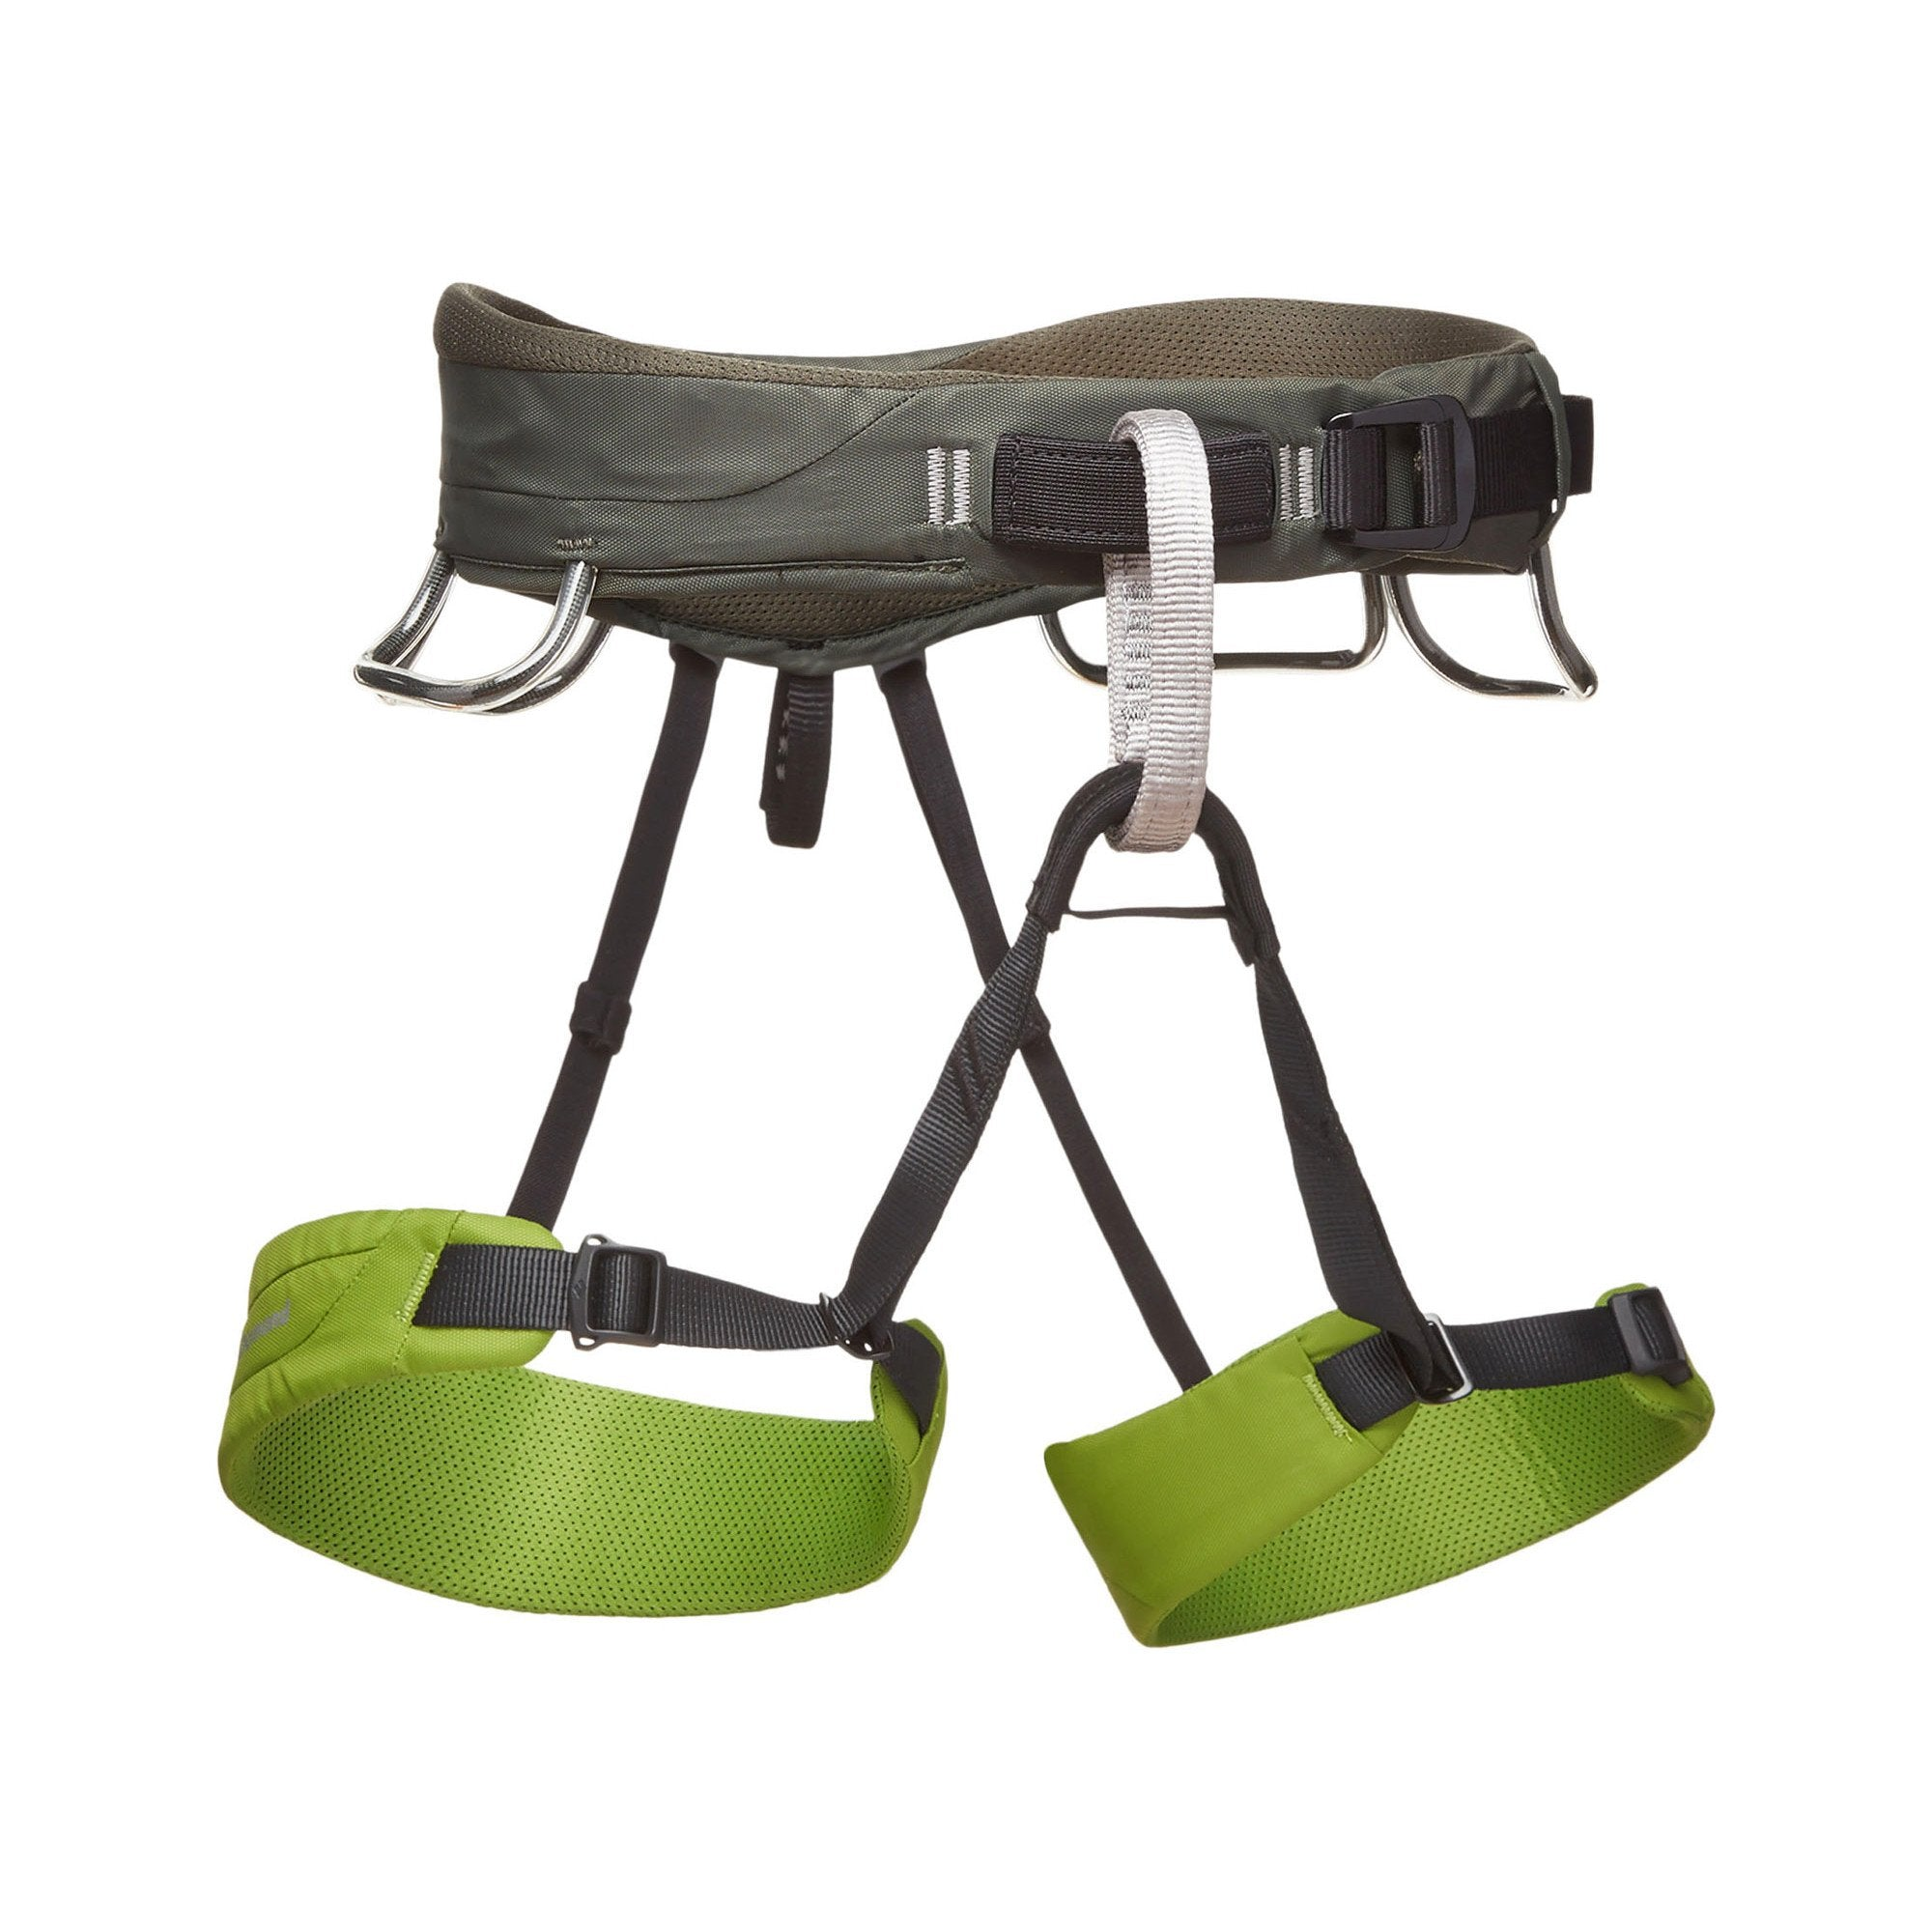 Black Diamond Momentum Harness in grey and Green colours